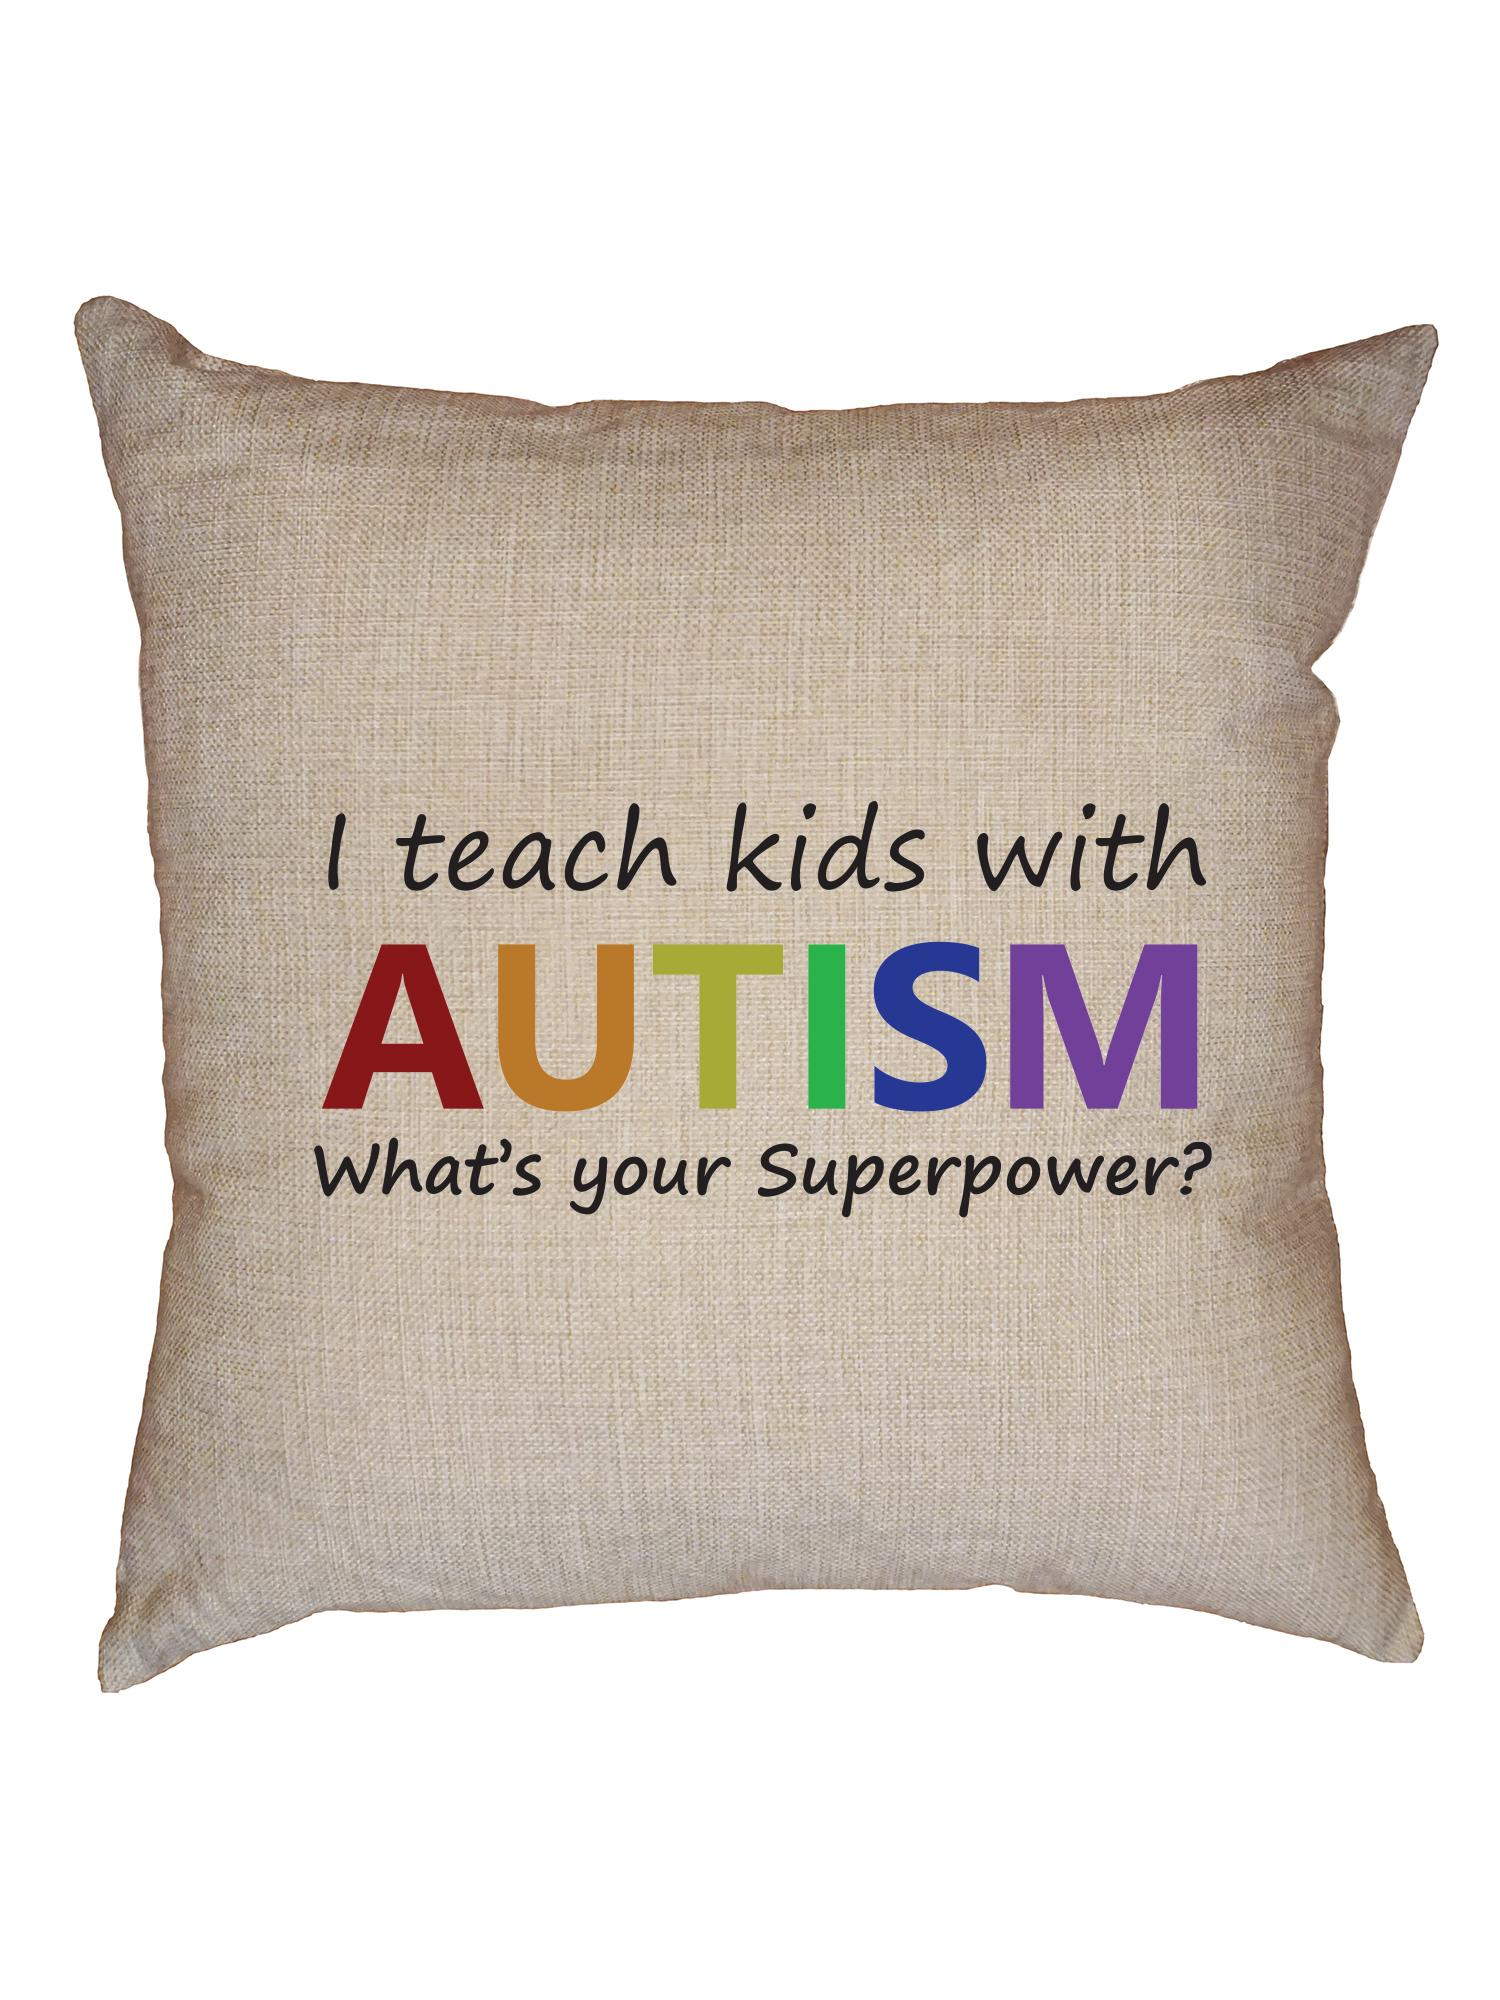 I Teach Kids With Autism Support Decorative Linen Throw Cushion Pillow Case With Insert Walmart Com Walmart Com